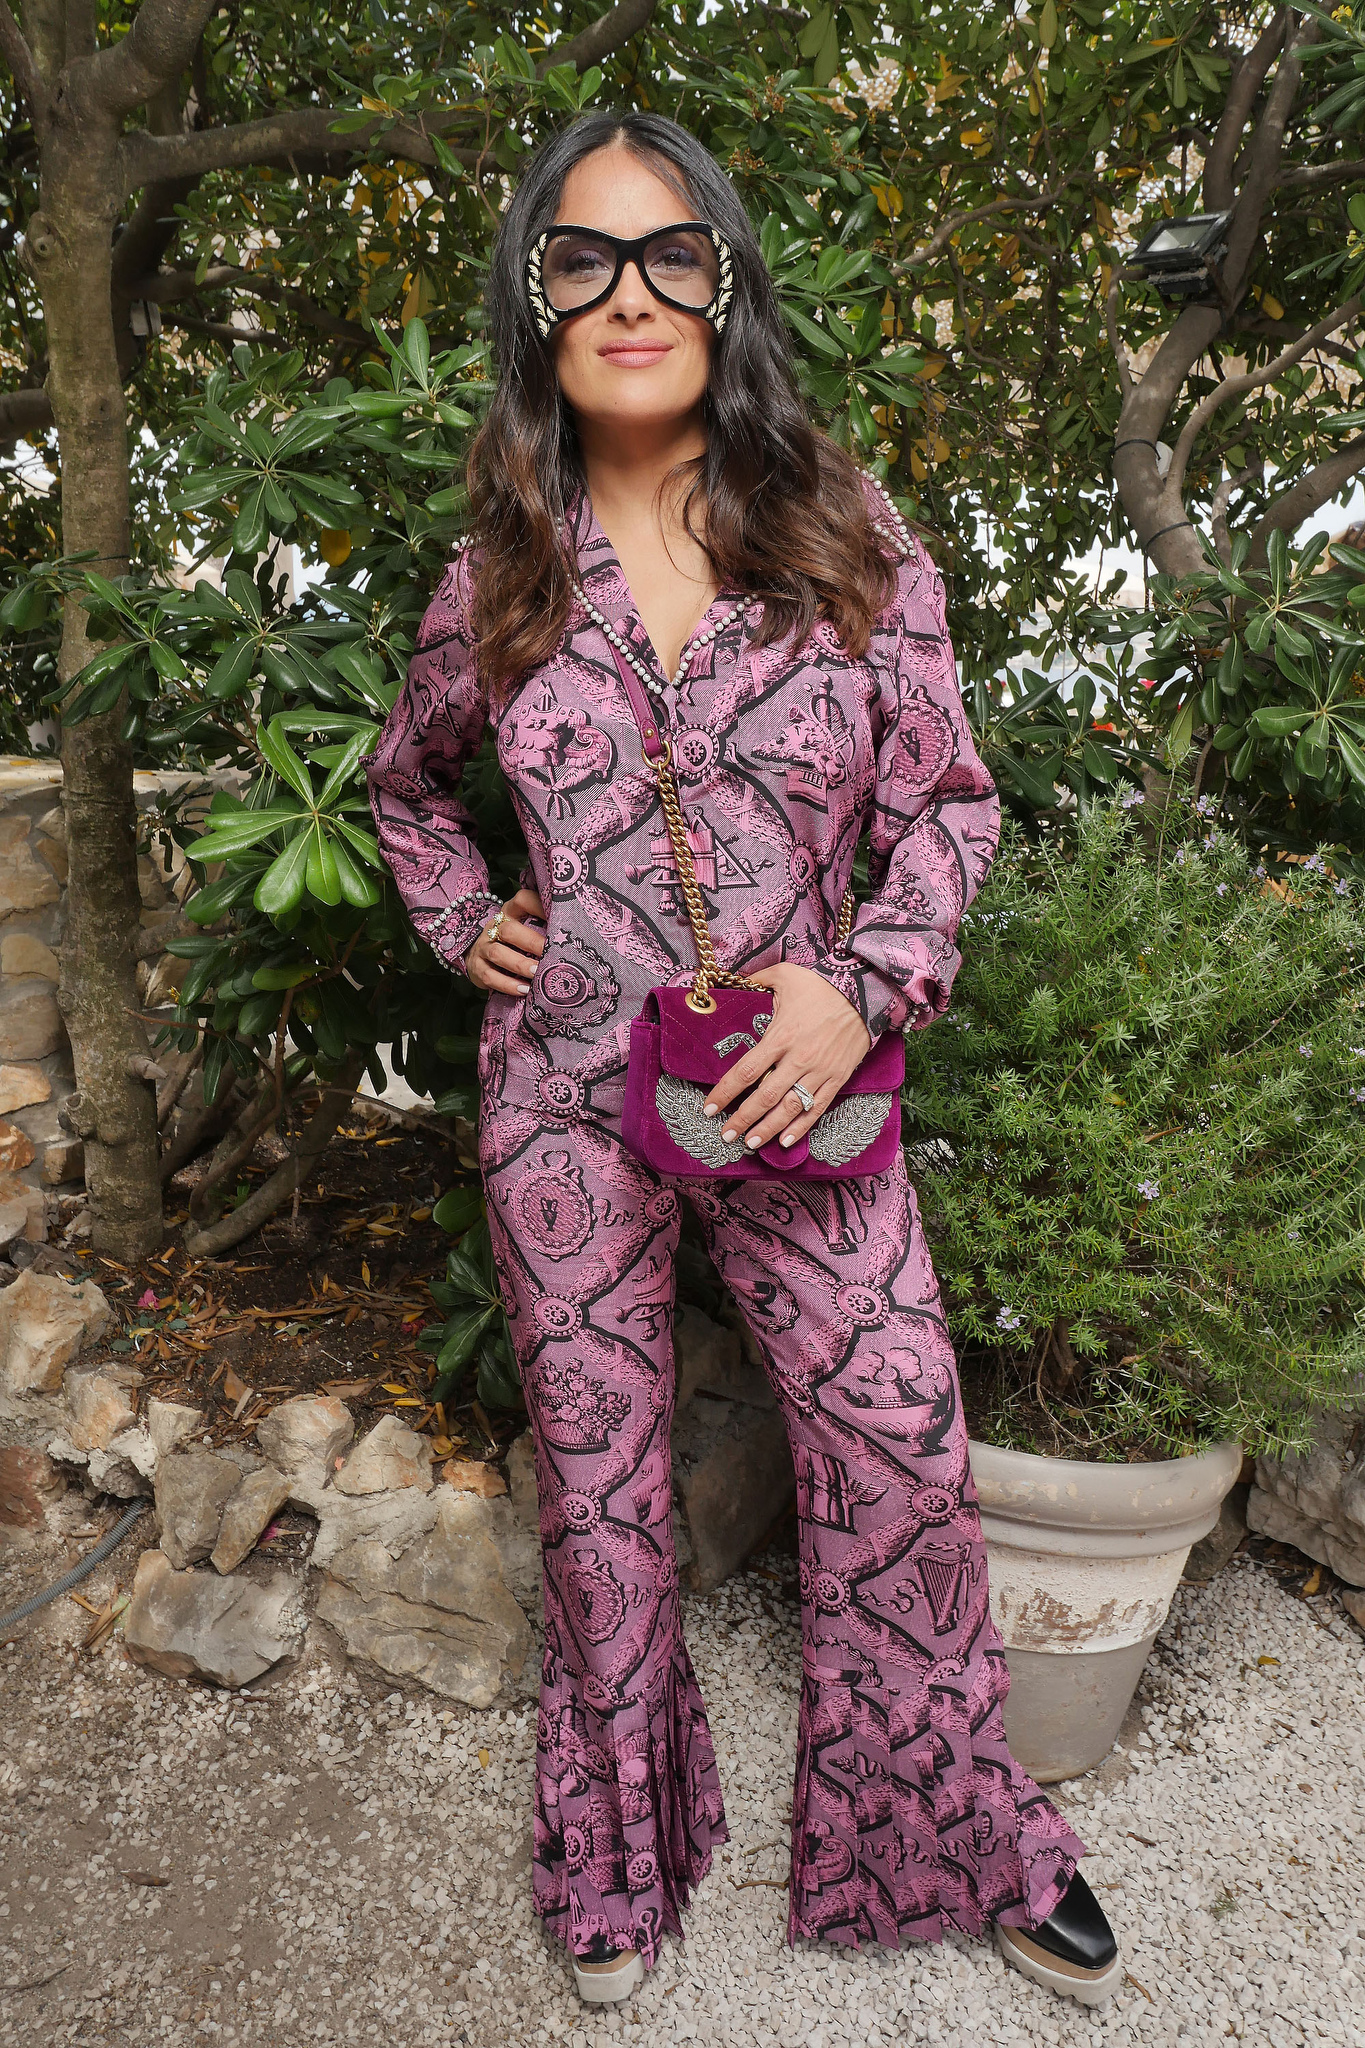 Salma Hayek at the Kering and Madame Figaro Women in Film Cannes lunch